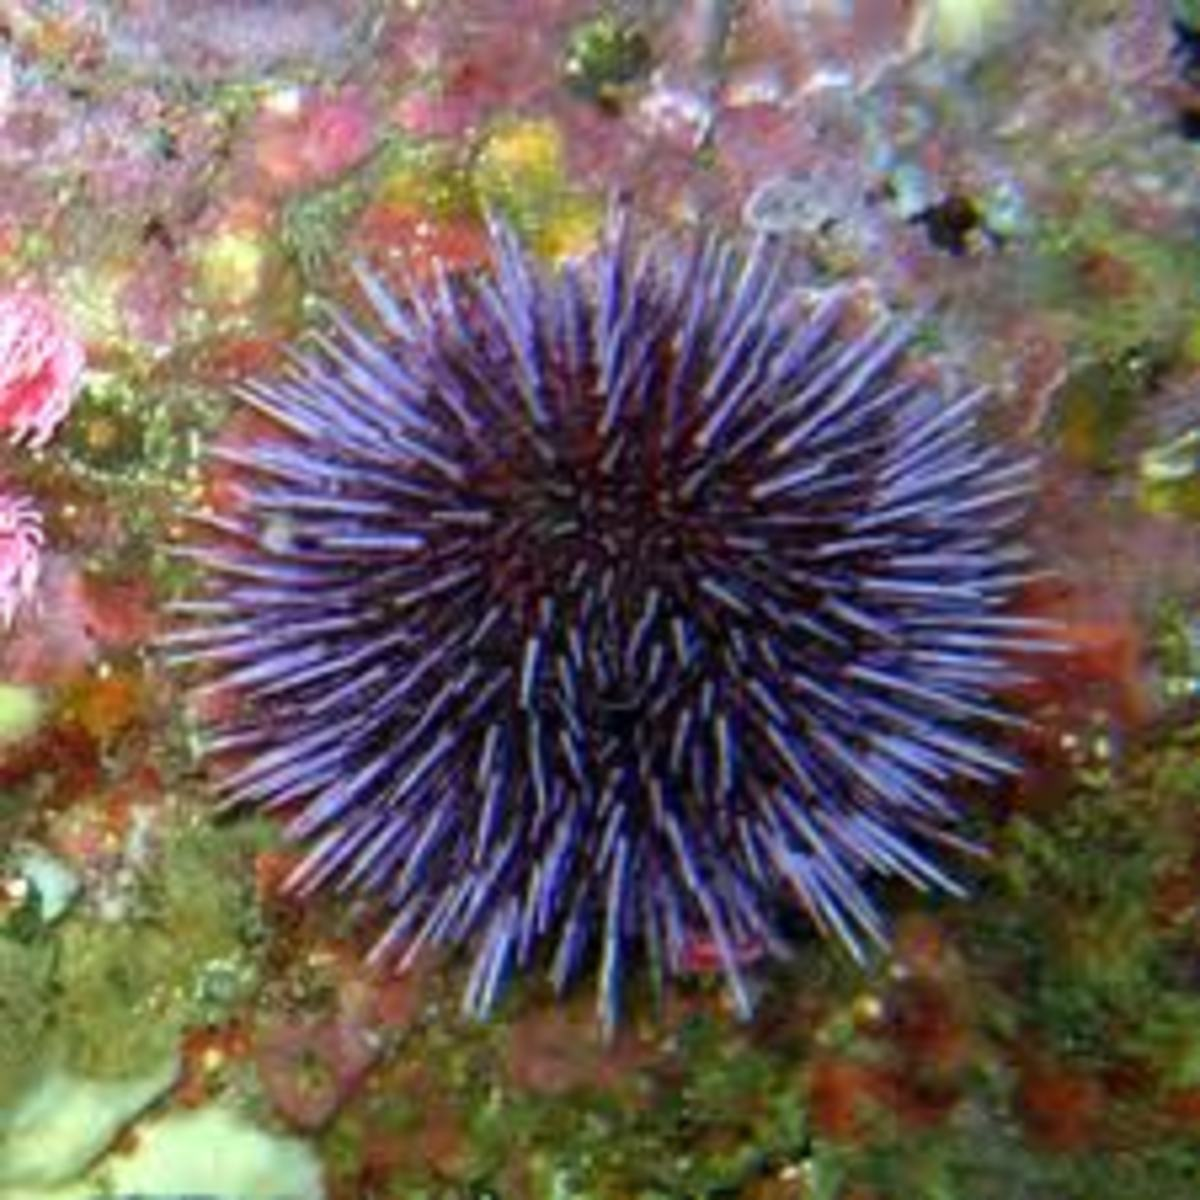 a purple sea urchin